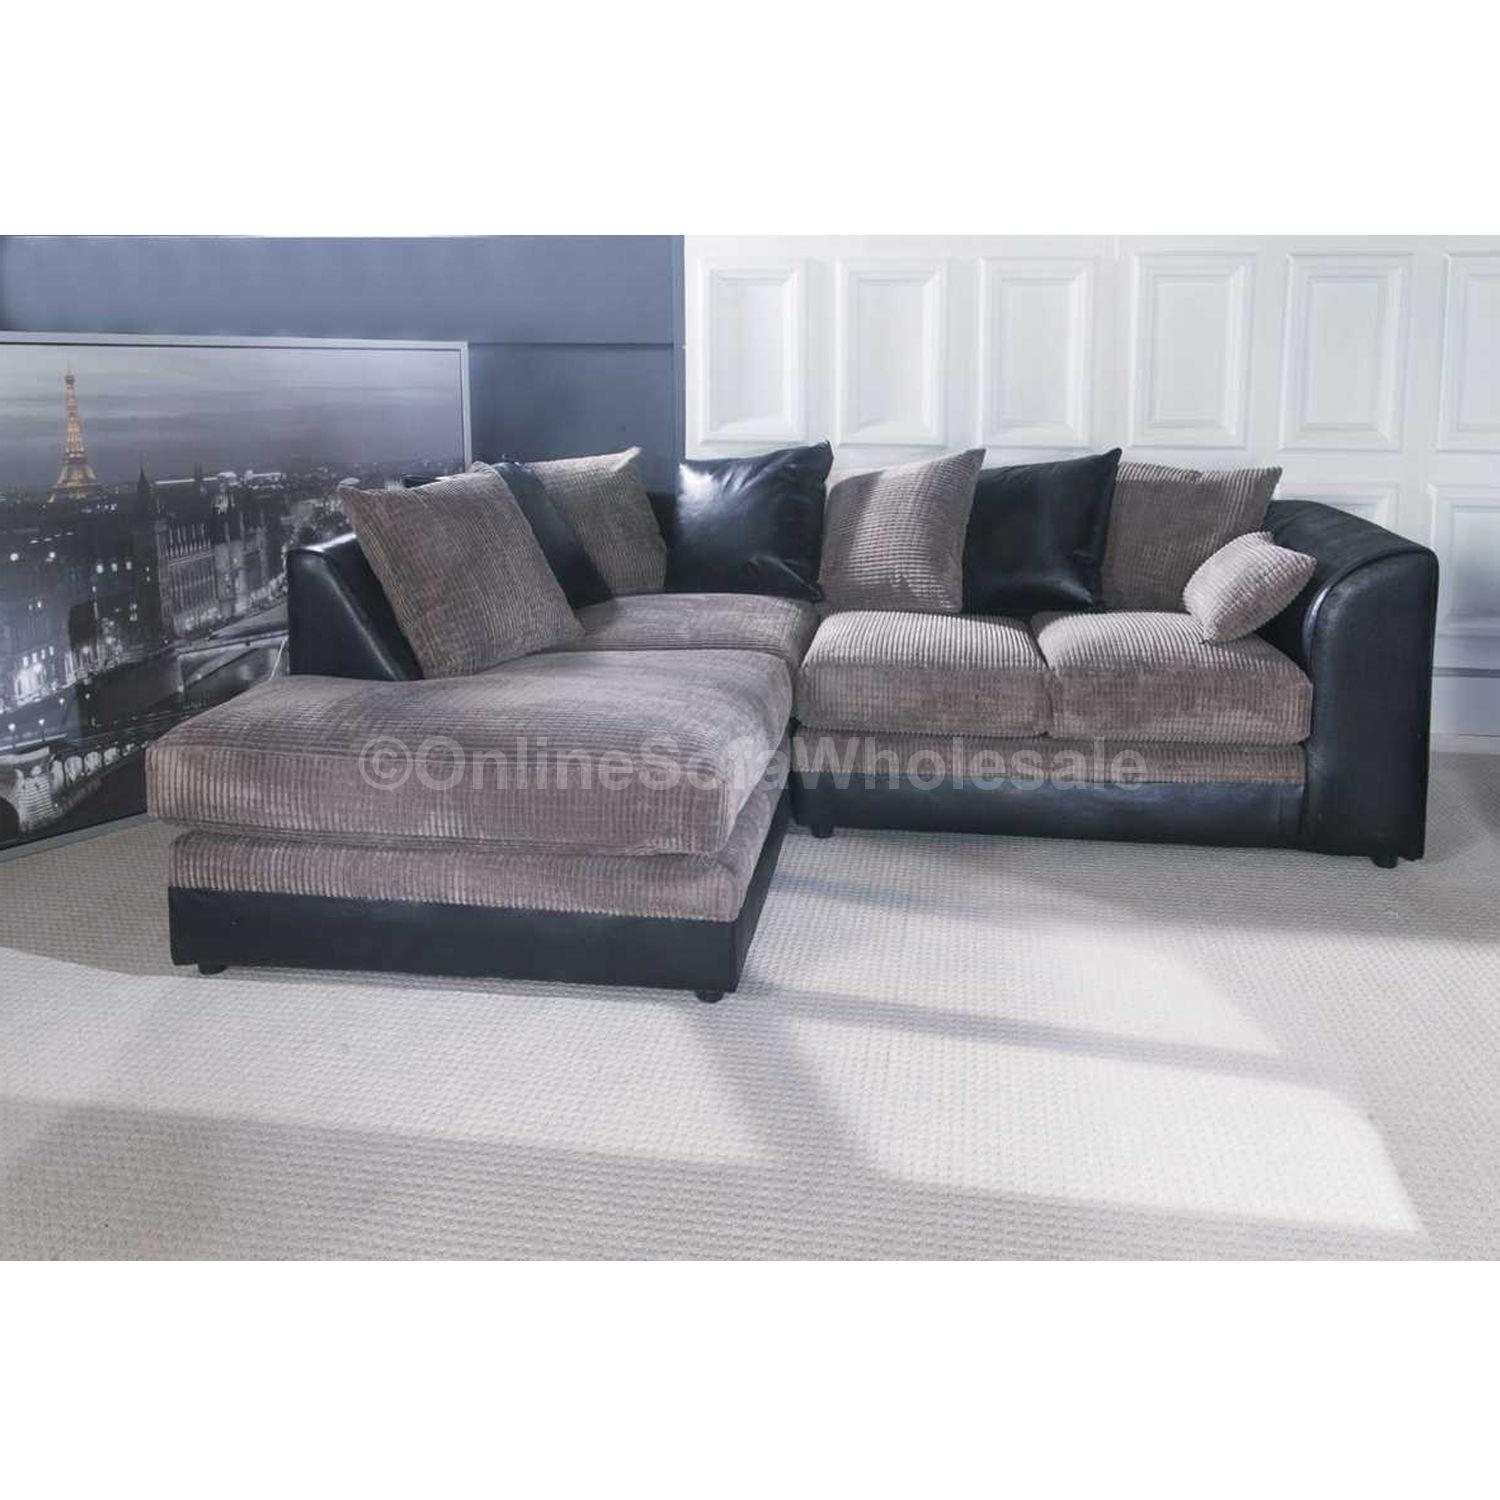 Sofas Center : Small Grey Sofa Sleeper Fascinating Picture Ideas Within Small Grey Sofas (Image 18 of 20)